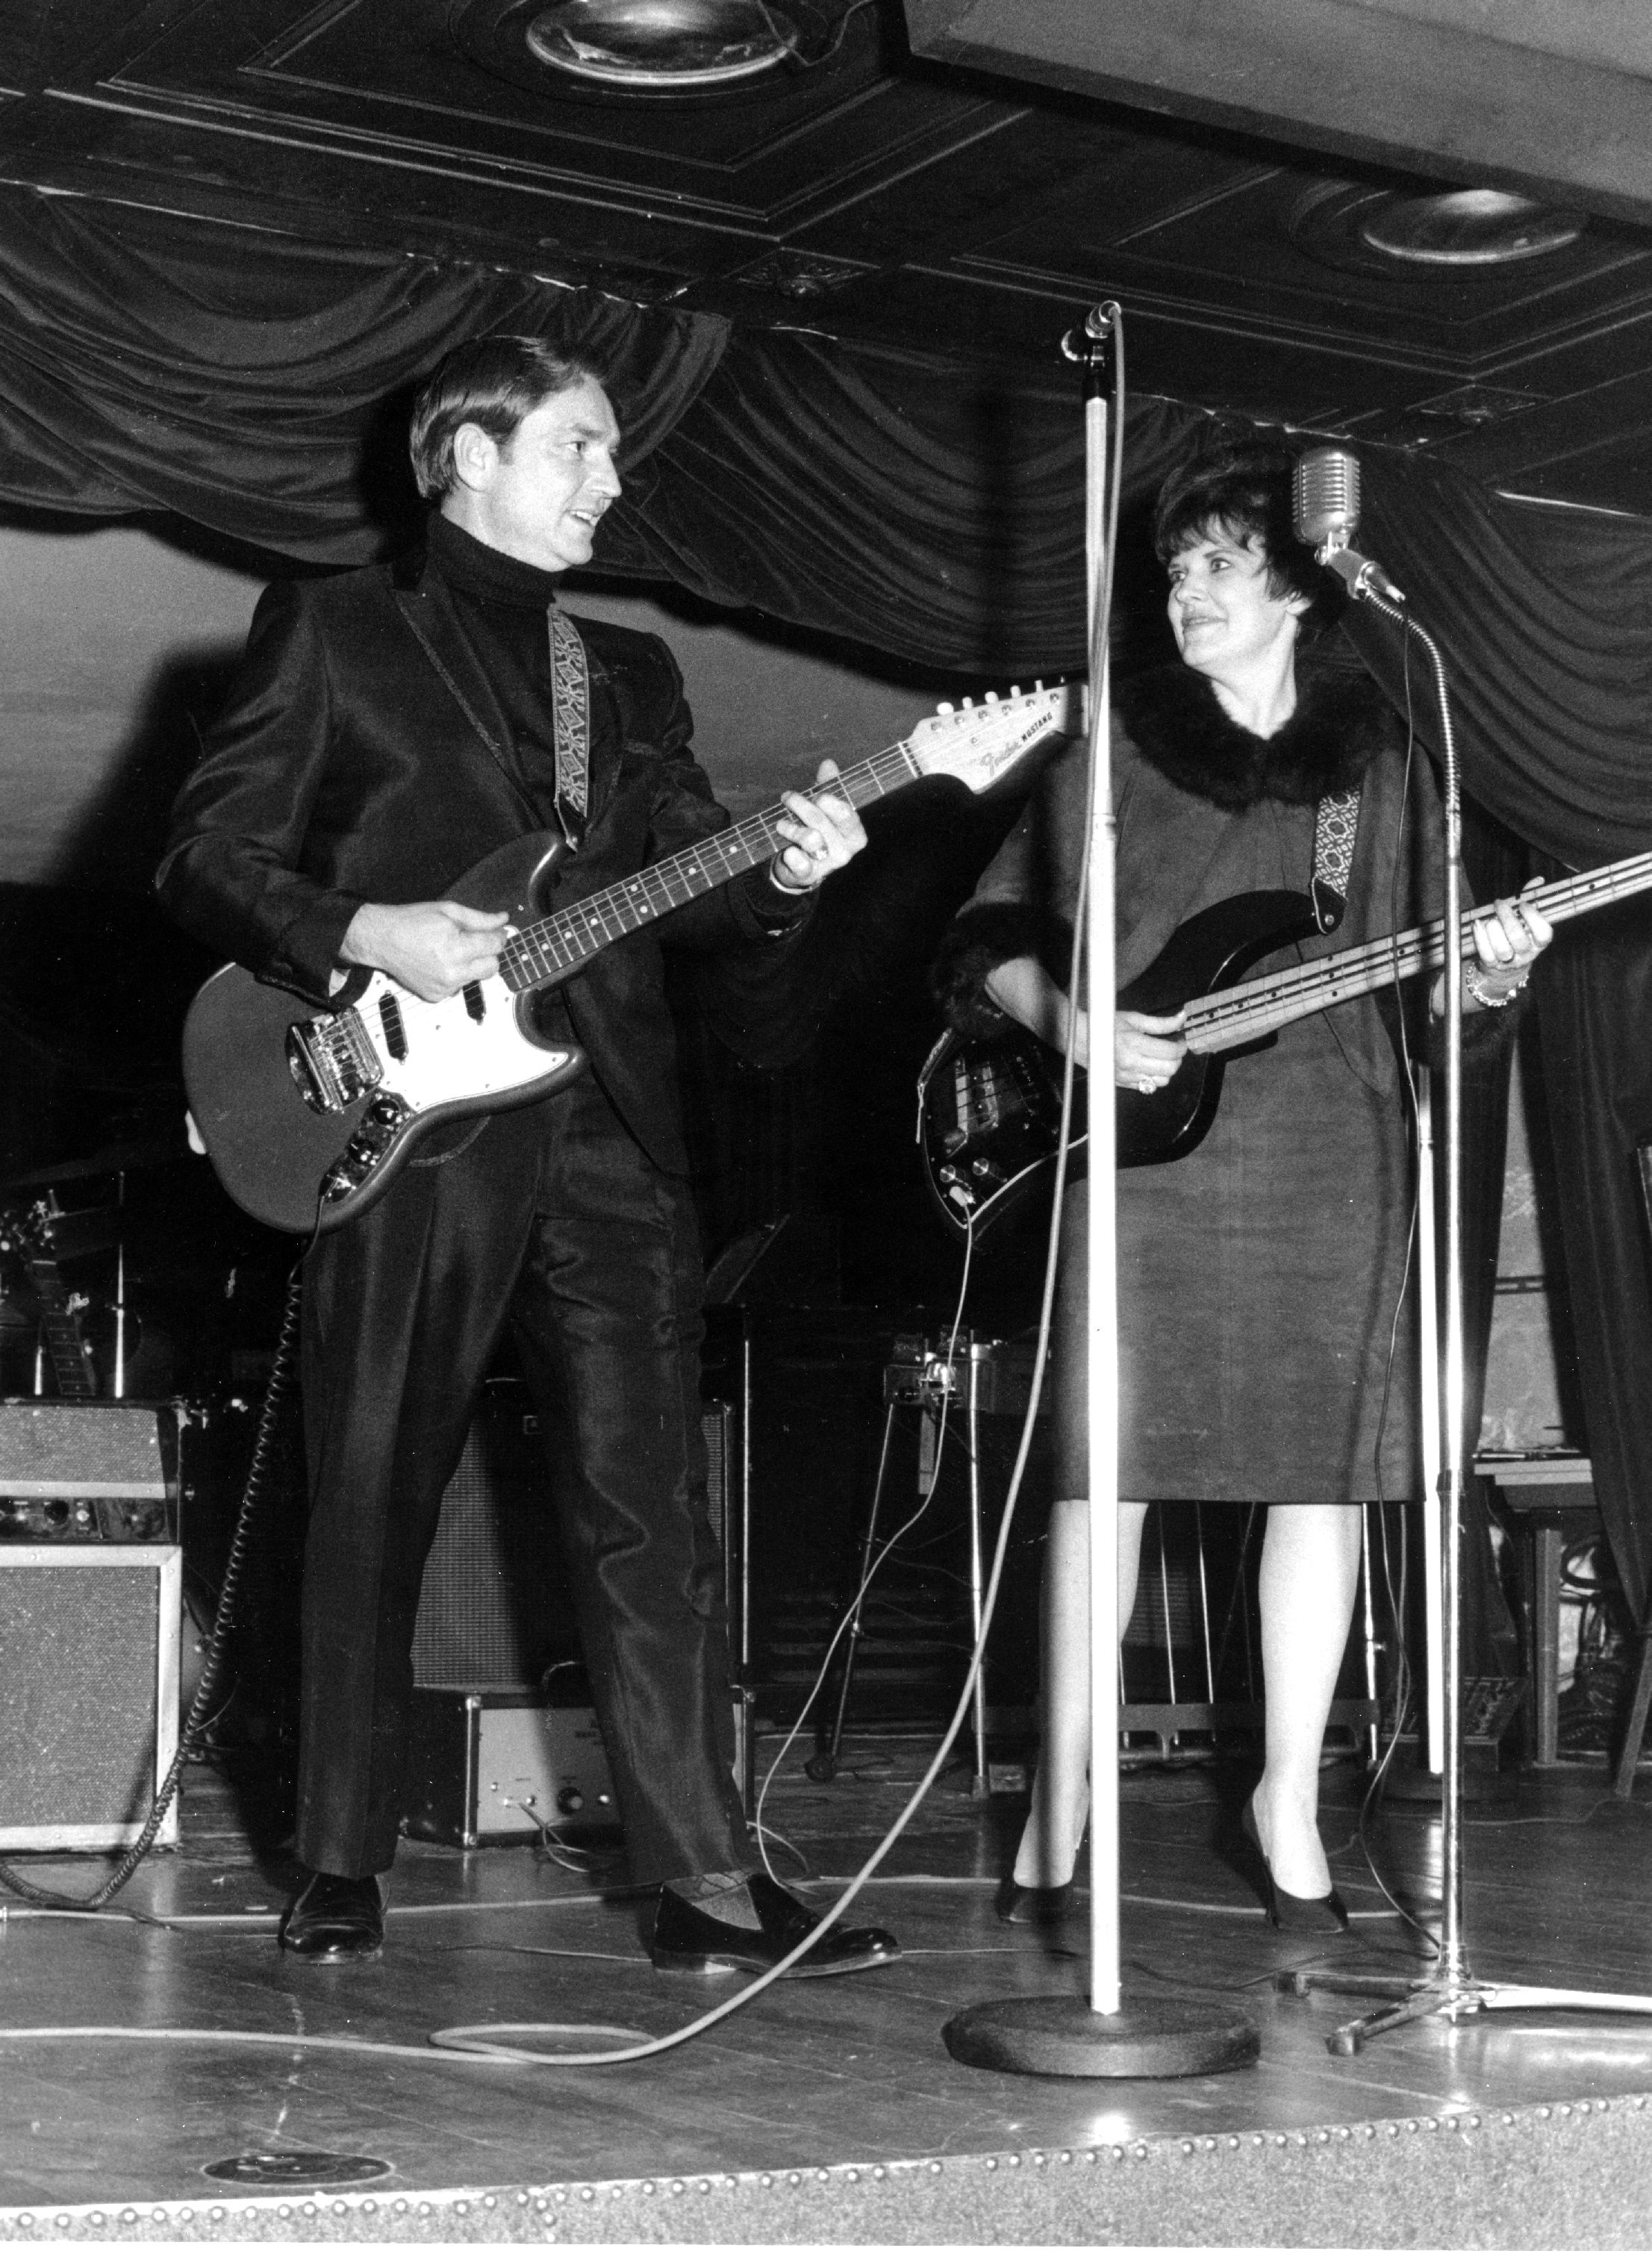 Willie Nelson and ex-wife Shirley Collie performing together in 1961   Source: Getty Images